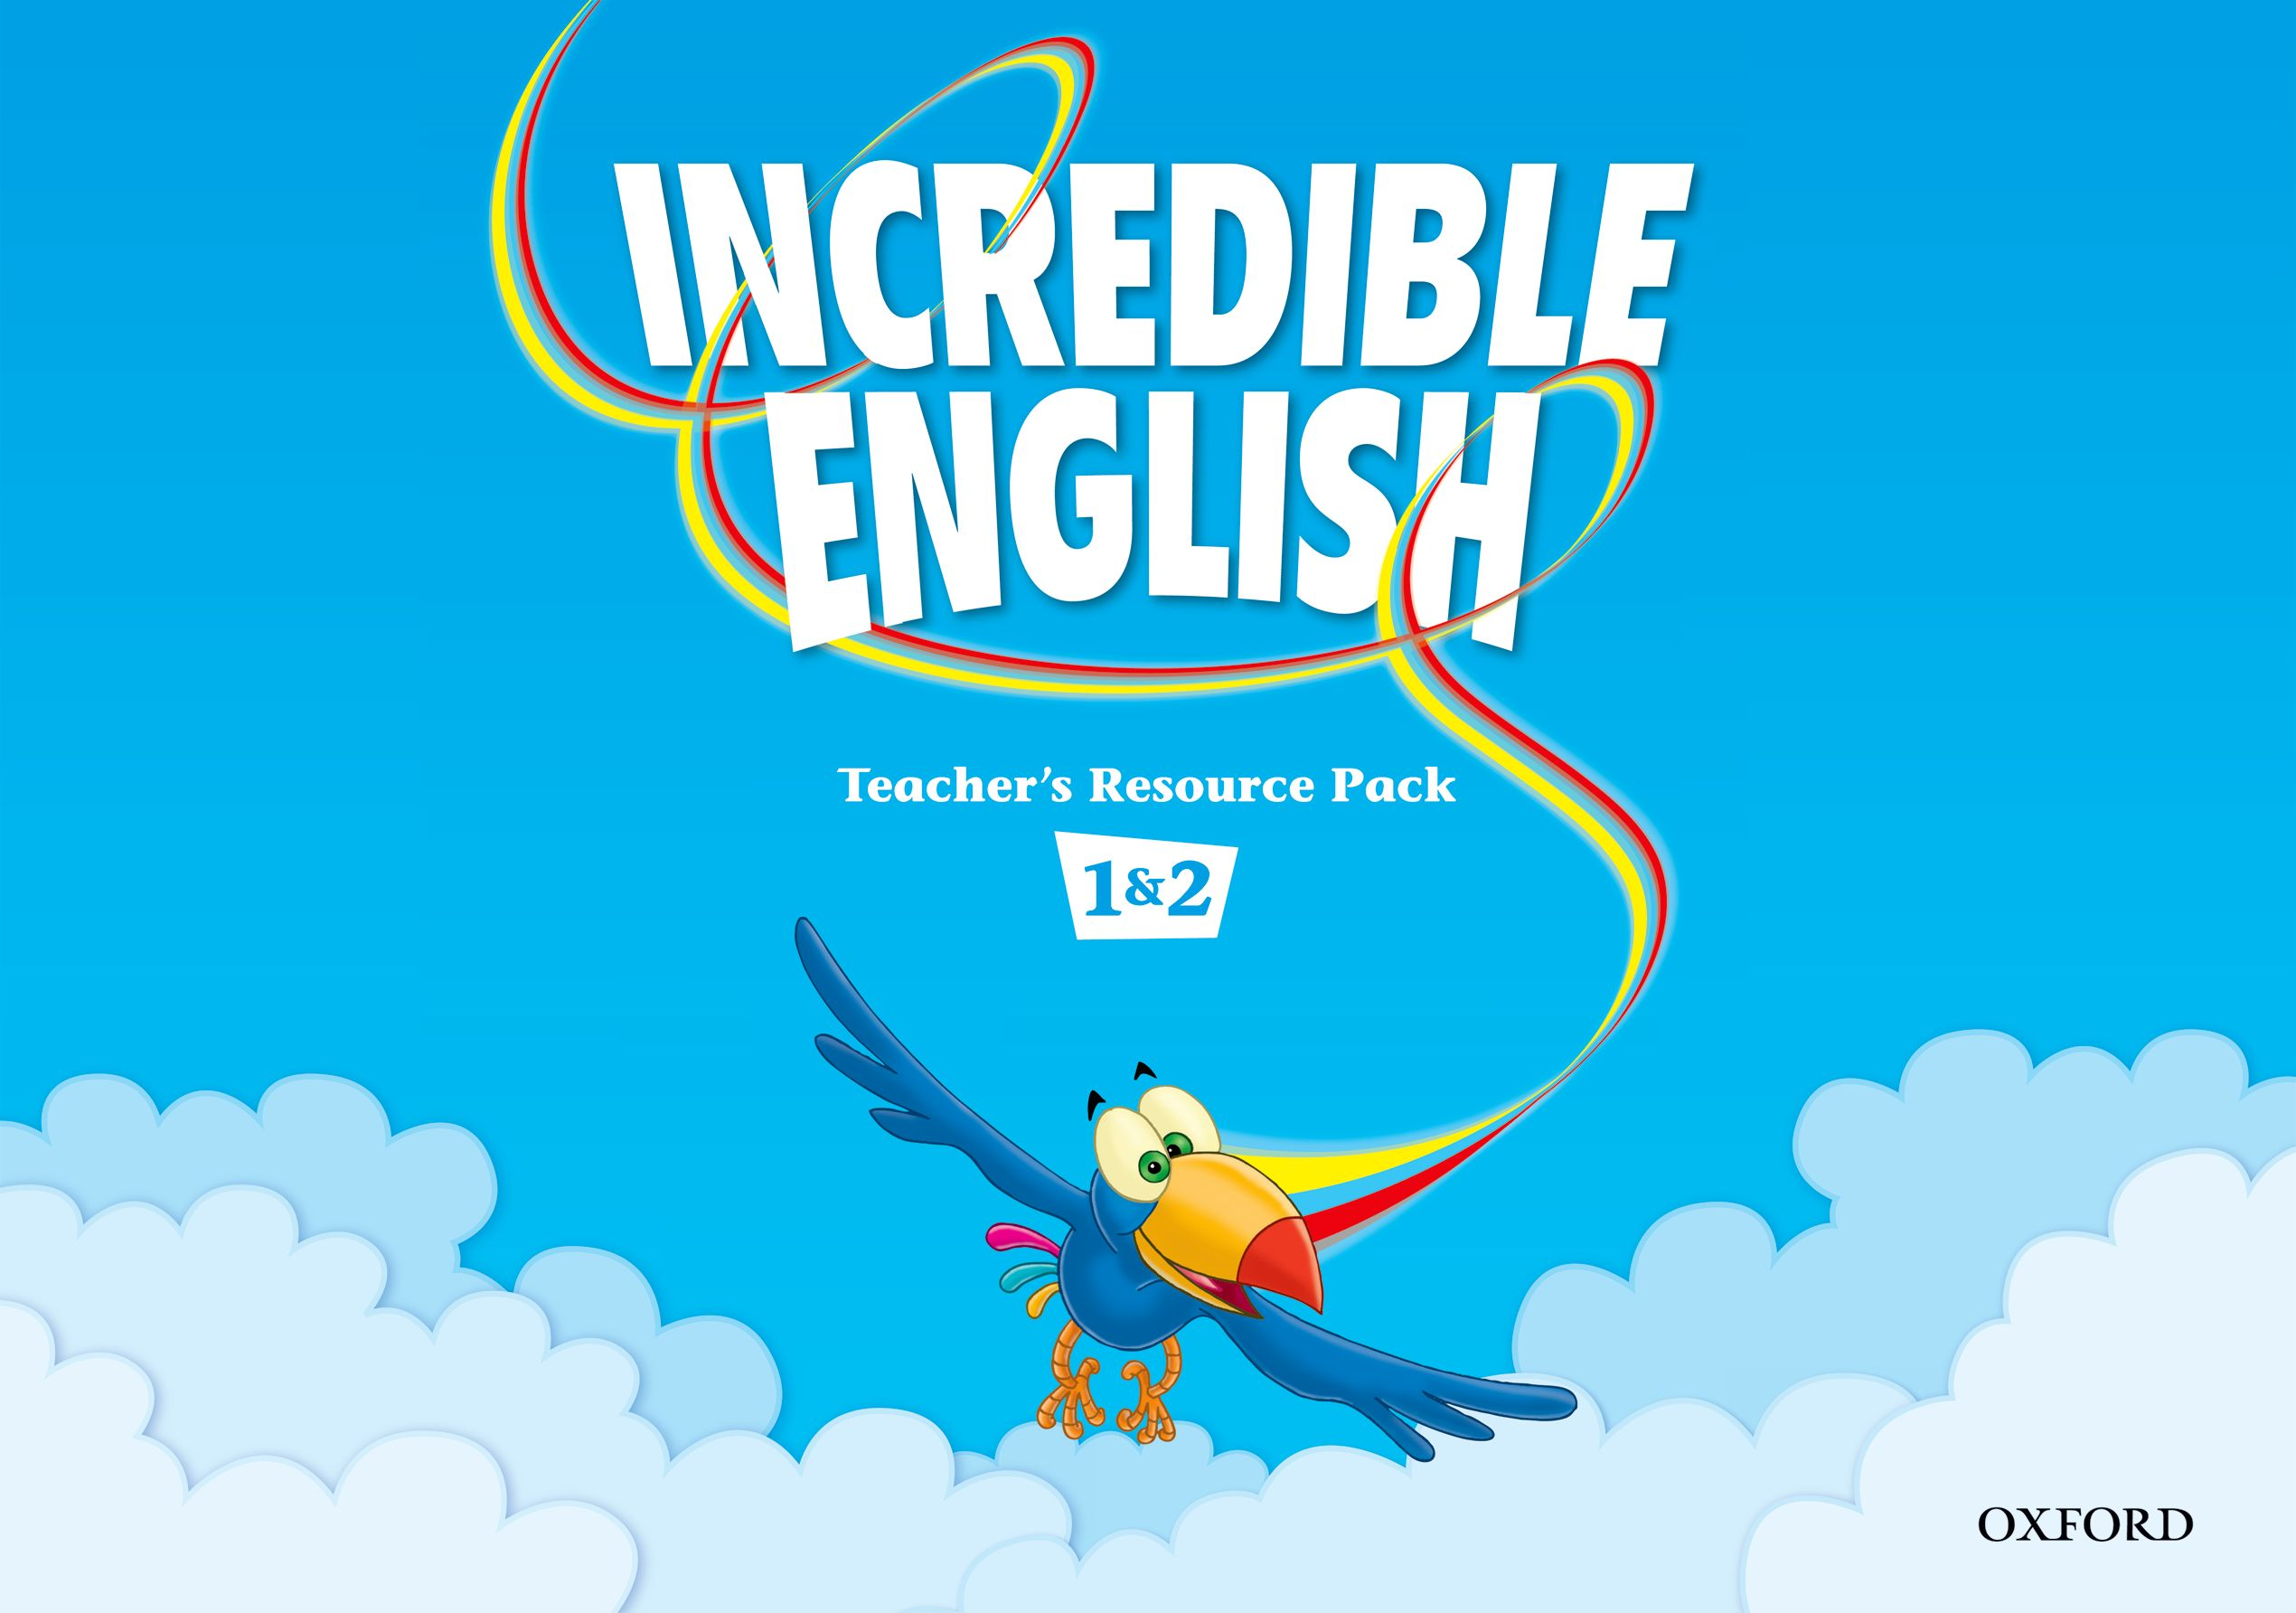 INCREDIBLE ENGLISHLISH 1&2 TRP incredible englishlish 1 cl cd 2